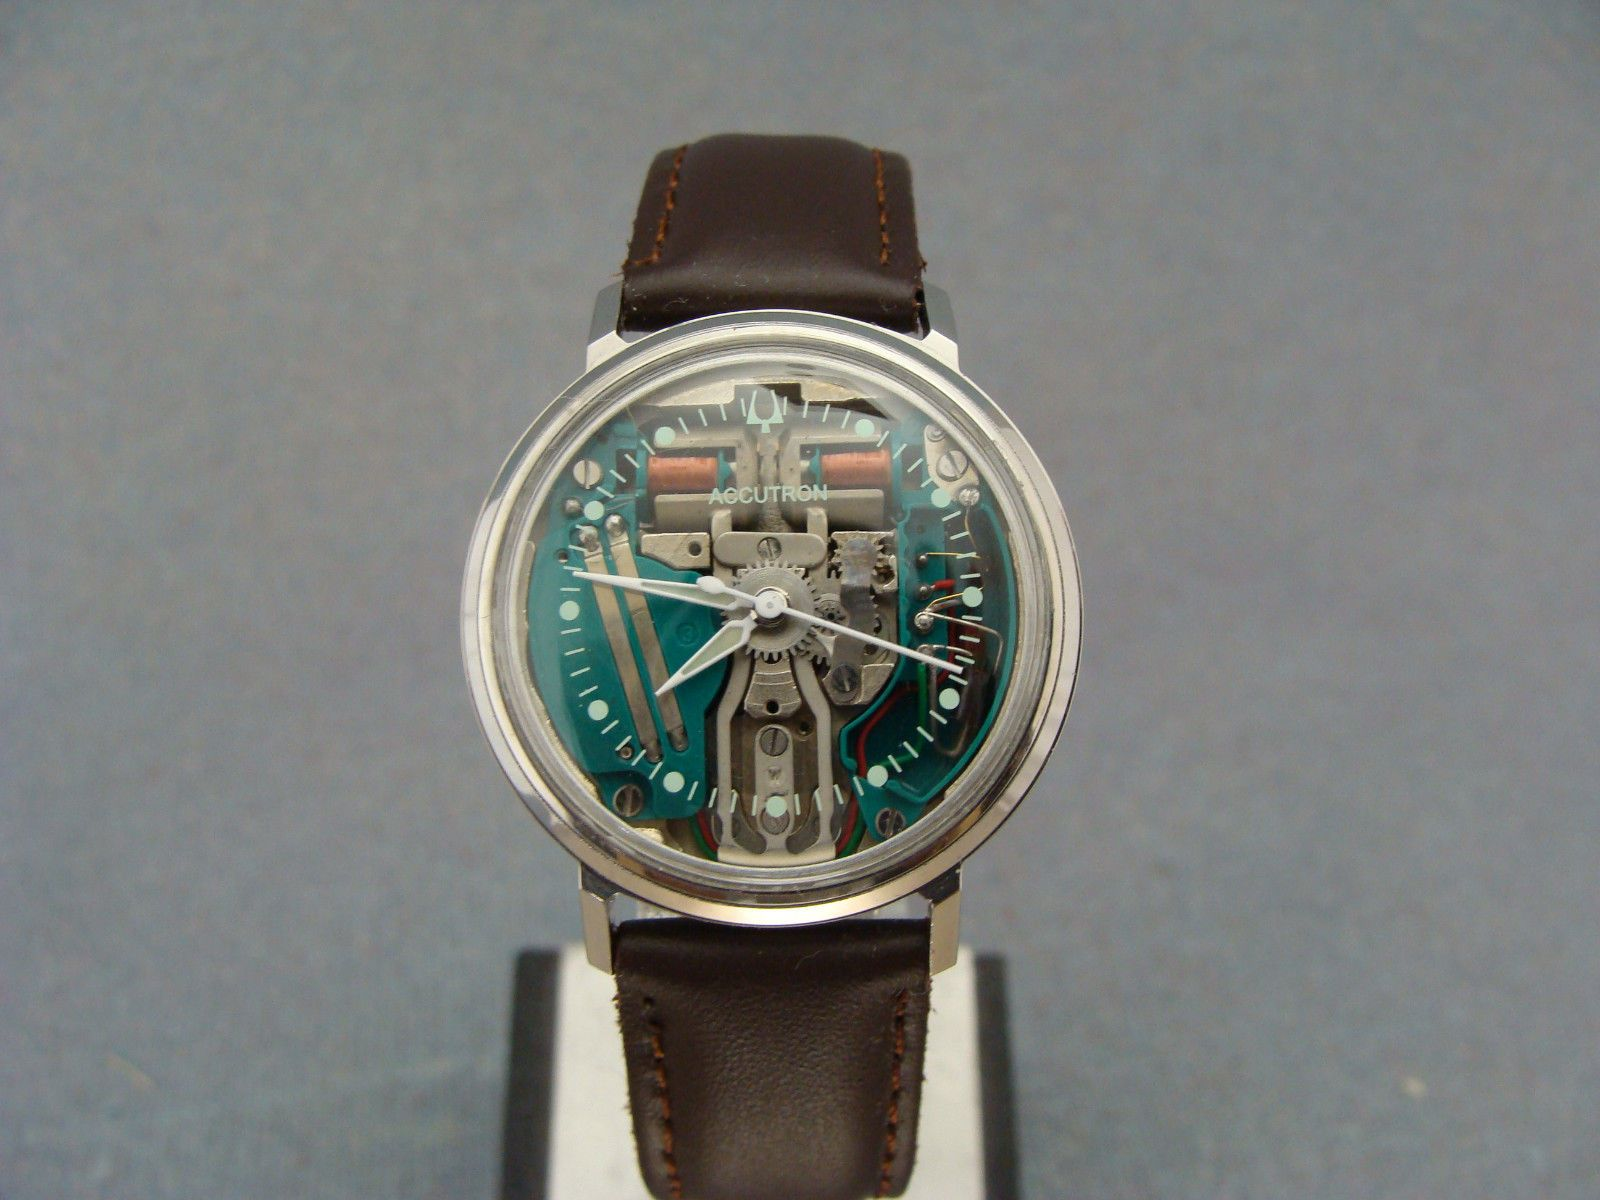 1967  BULOVA ACCUTRON 214 SPACEVIEW - STAINLESS STEEL | Jewelry & Watches, Watches, Parts & Accessories, Wristwatches | eBay!